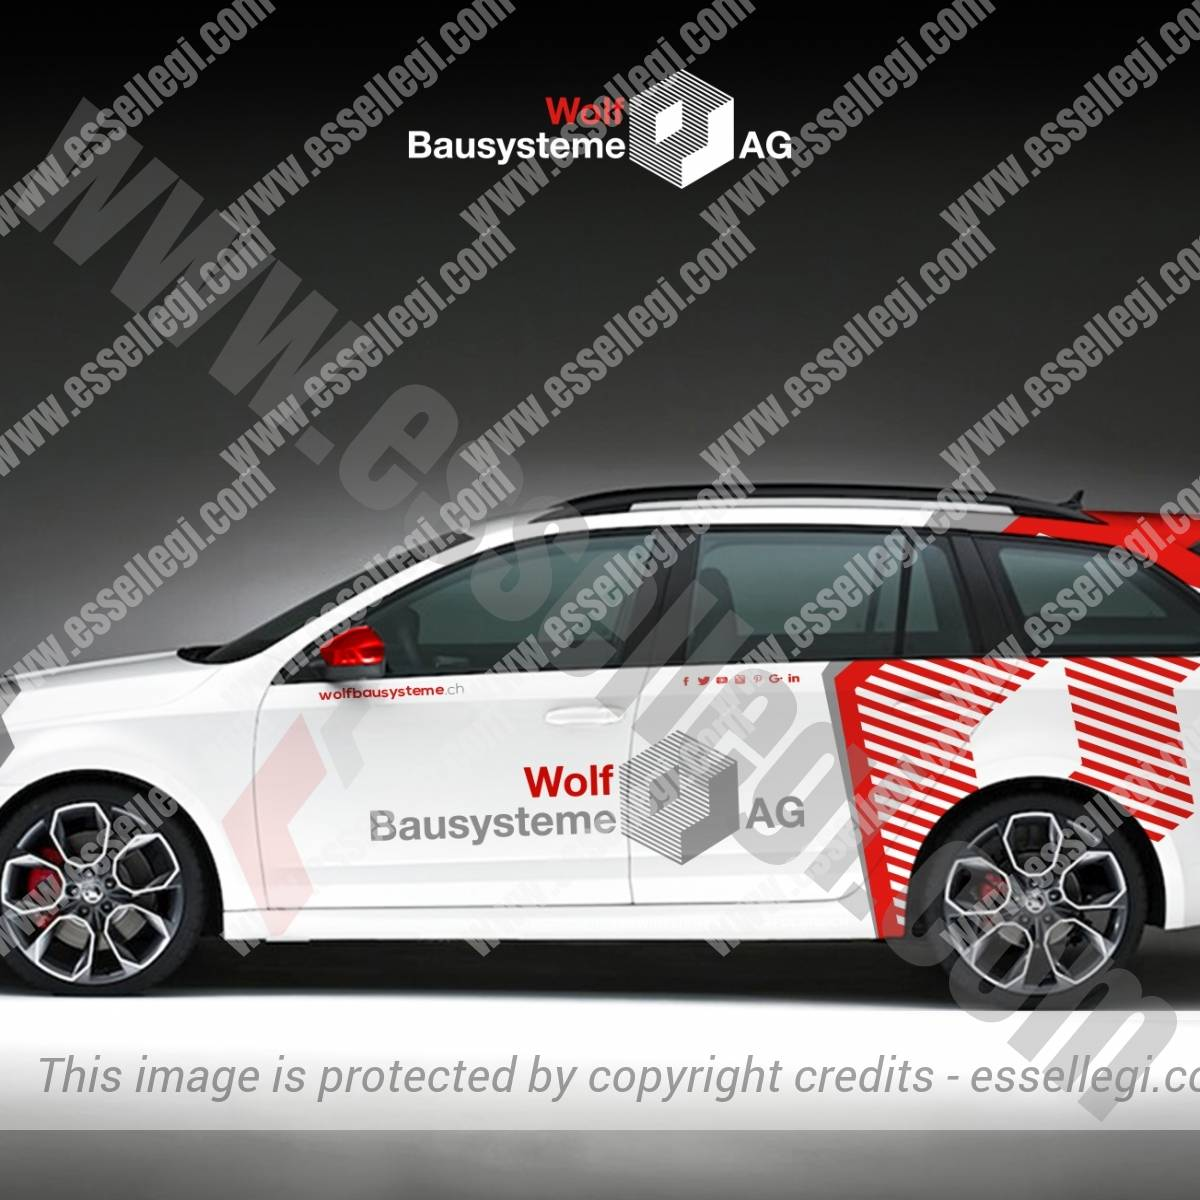 WOLF BAUSYSTEME AG | CAR WRAP DESIGN 🇨🇭